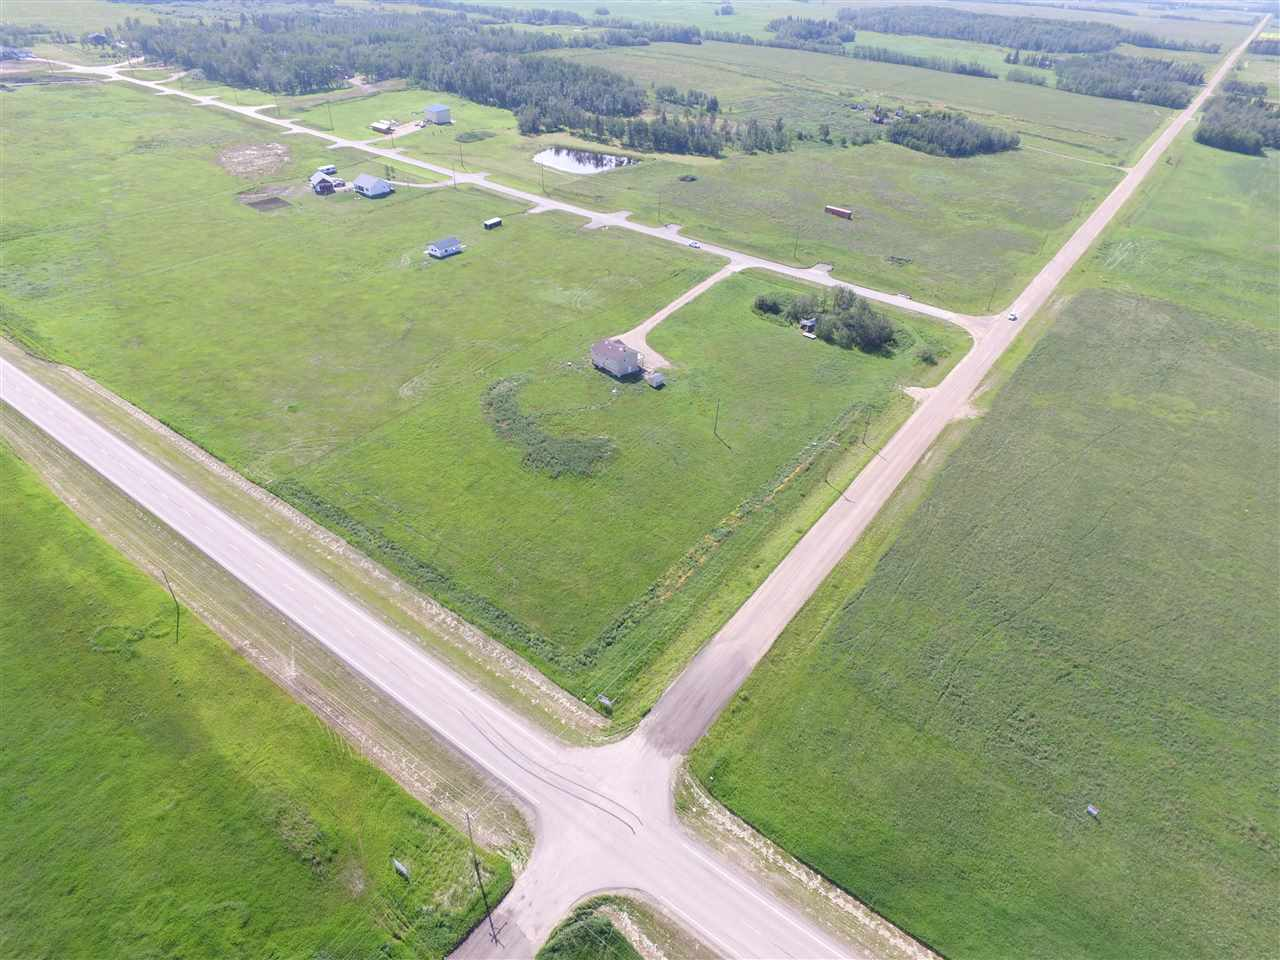 Main Photo: 39 Paradise Hills: Rural Leduc County Rural Land/Vacant Lot for sale : MLS® # E4025520